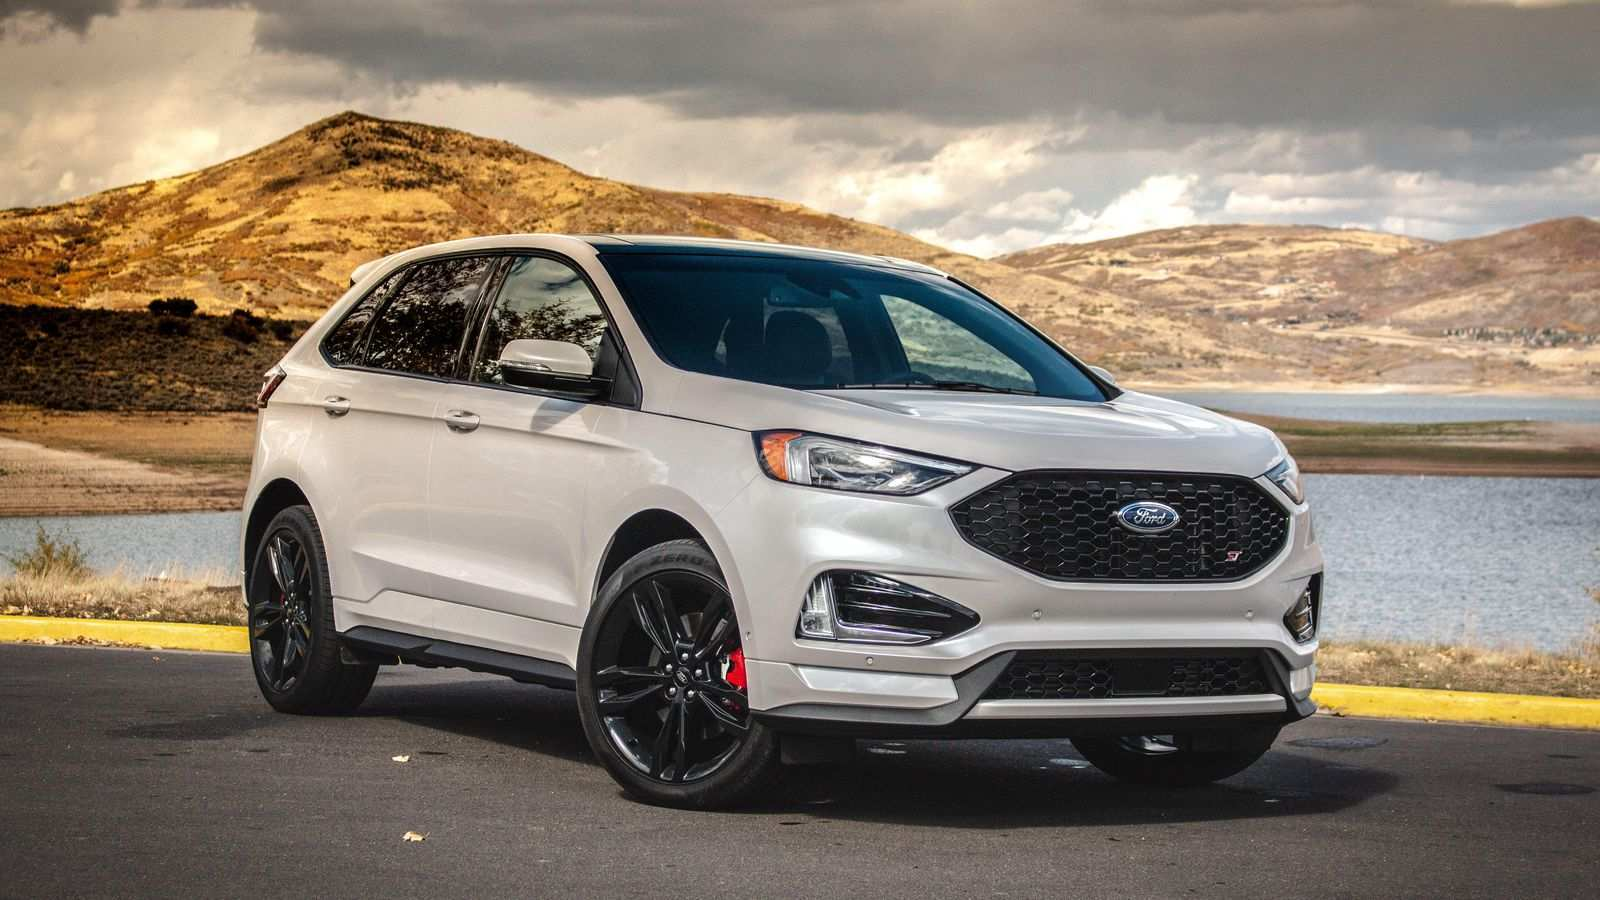 86 Best Review 2019 Ford Edge Price and Review with 2019 Ford Edge